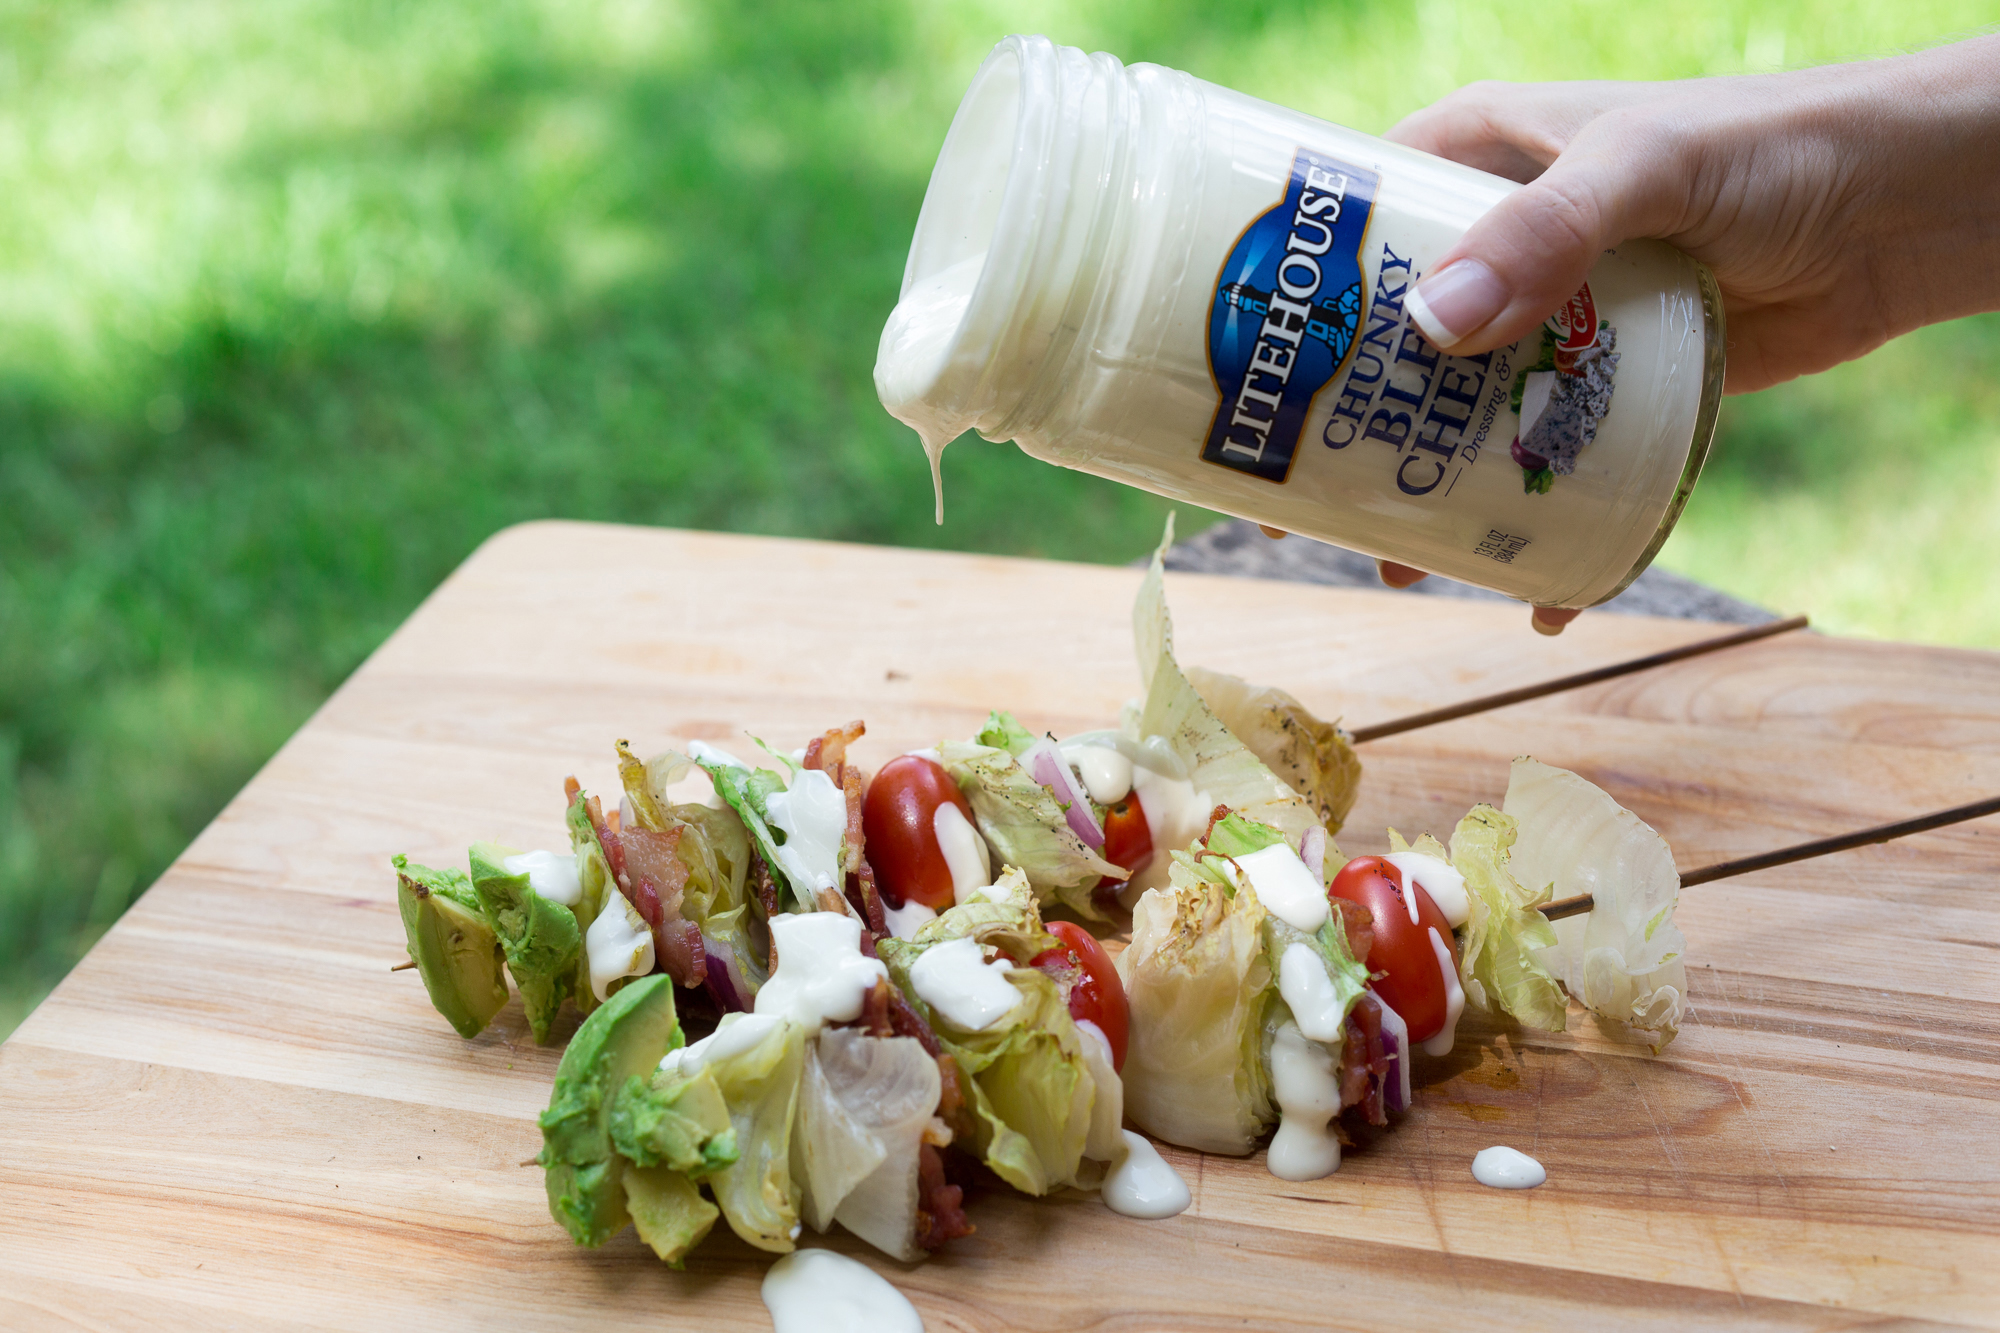 grilled-wedge-salad-skewers-finished-skewers-drizzle-dressing